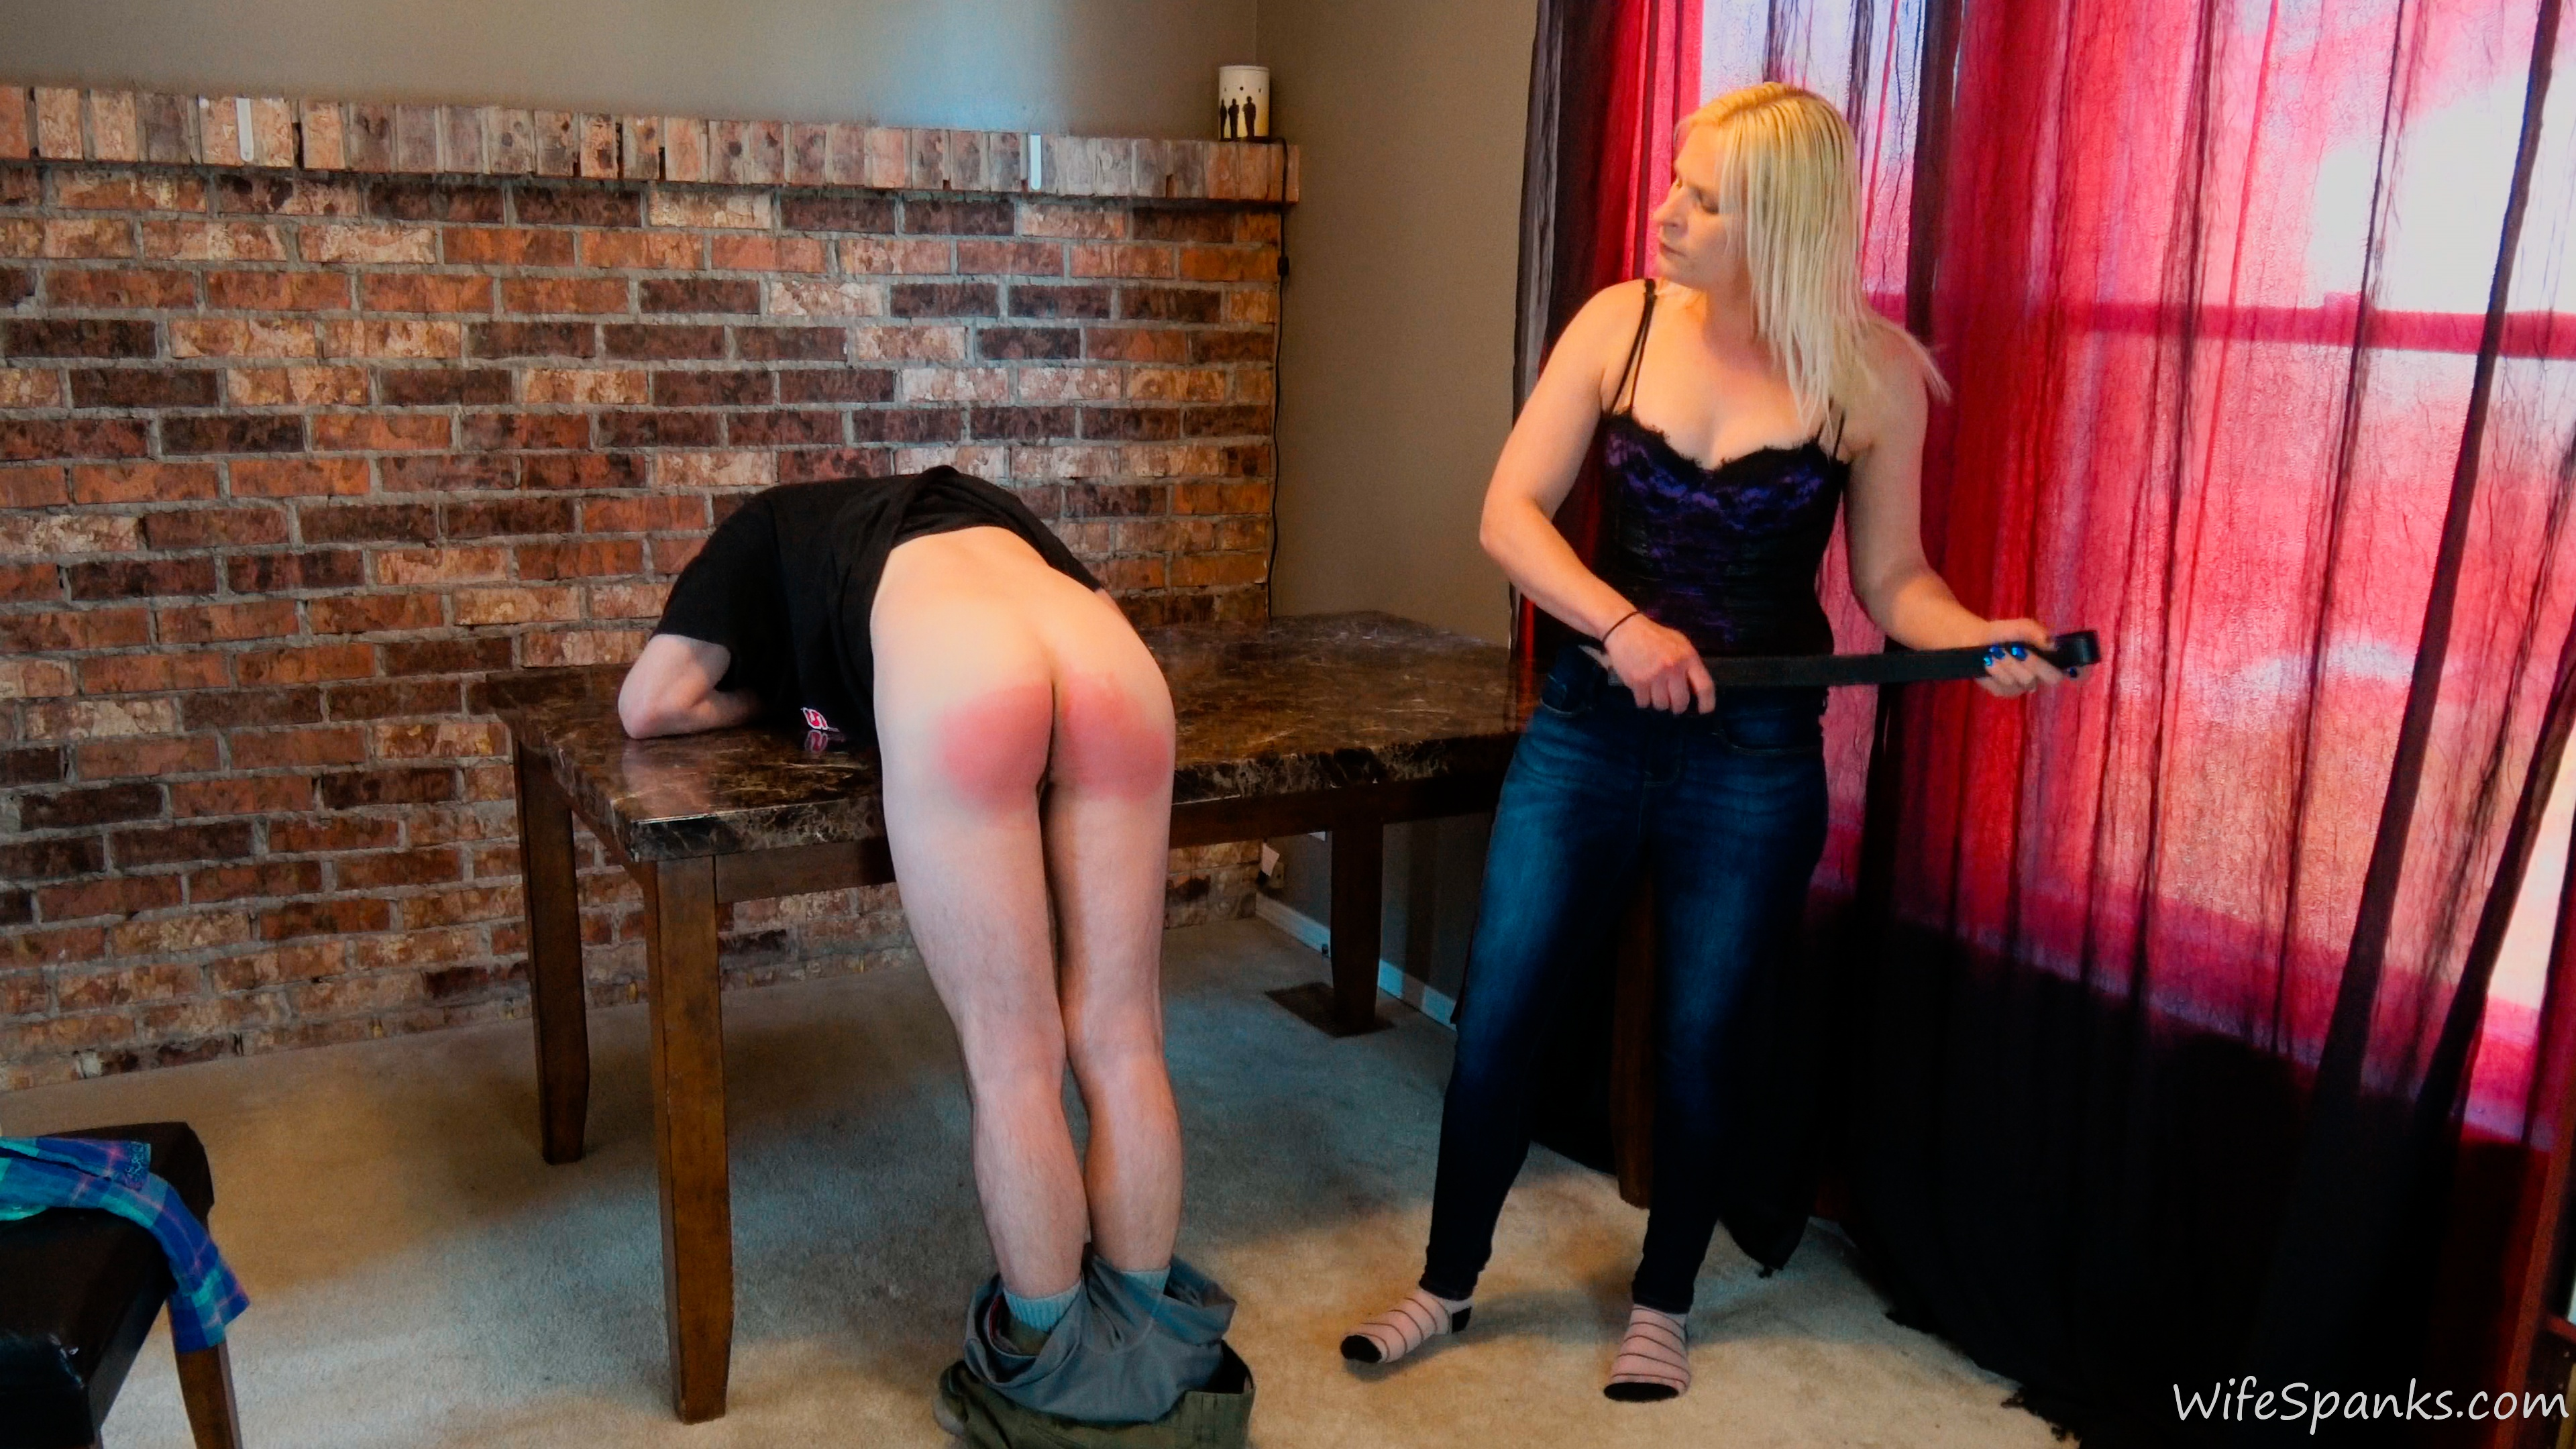 Spanking The Wife And Girlfriend Ebook